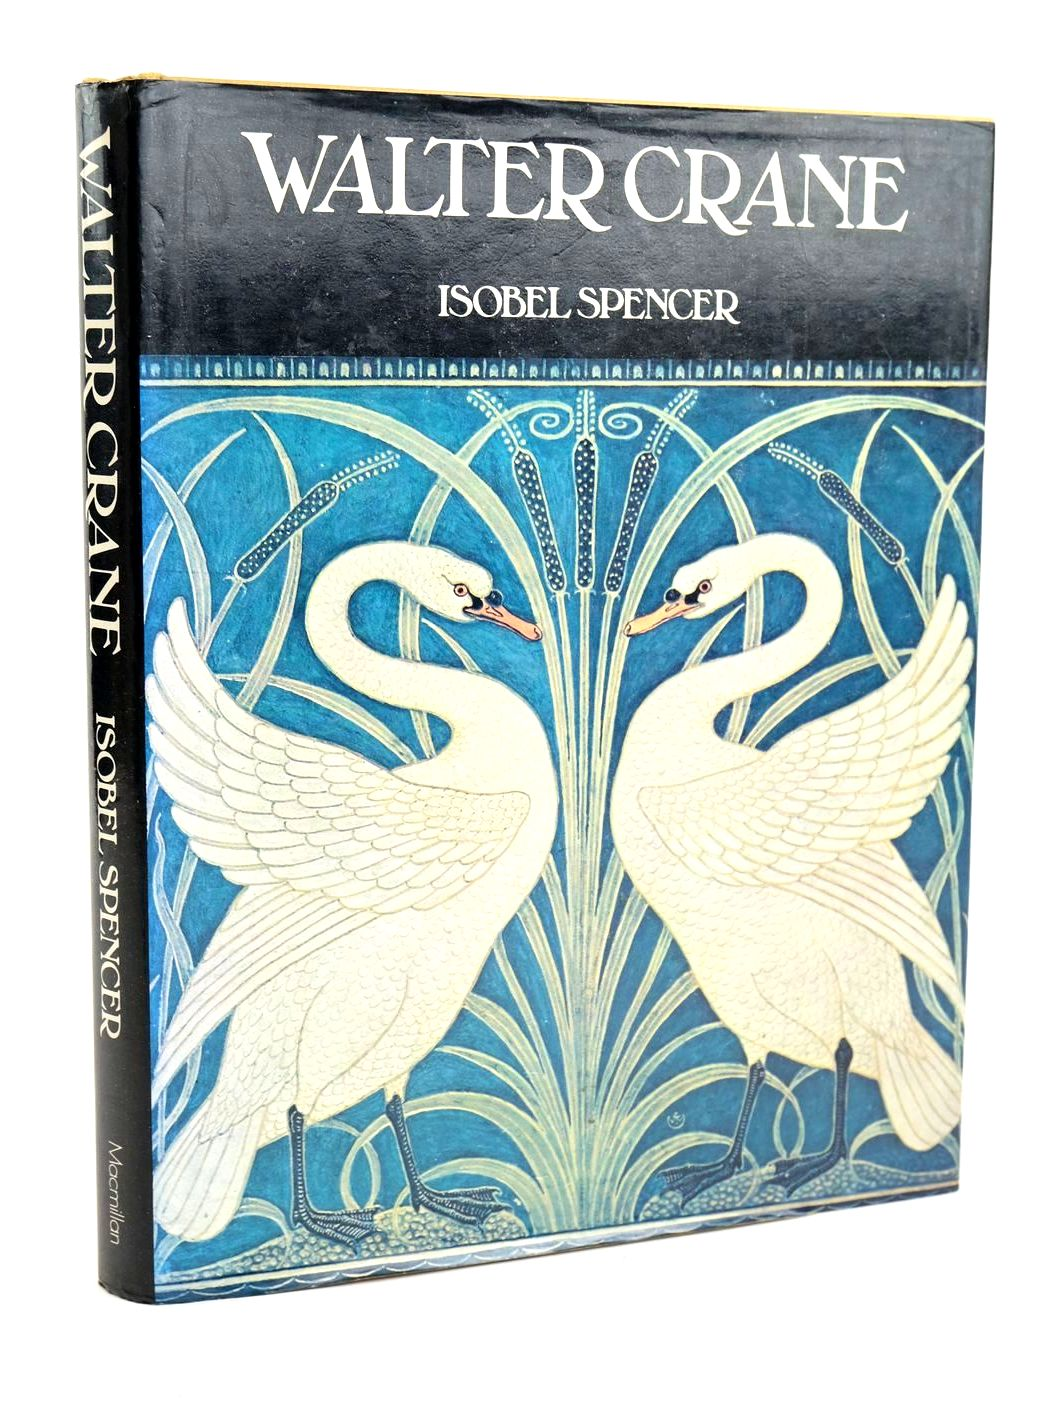 Photo of WALTER CRANE written by Spencer, Isobel illustrated by Crane, Walter published by Macmillan Publishing Co. Inc. (STOCK CODE: 1319488)  for sale by Stella & Rose's Books